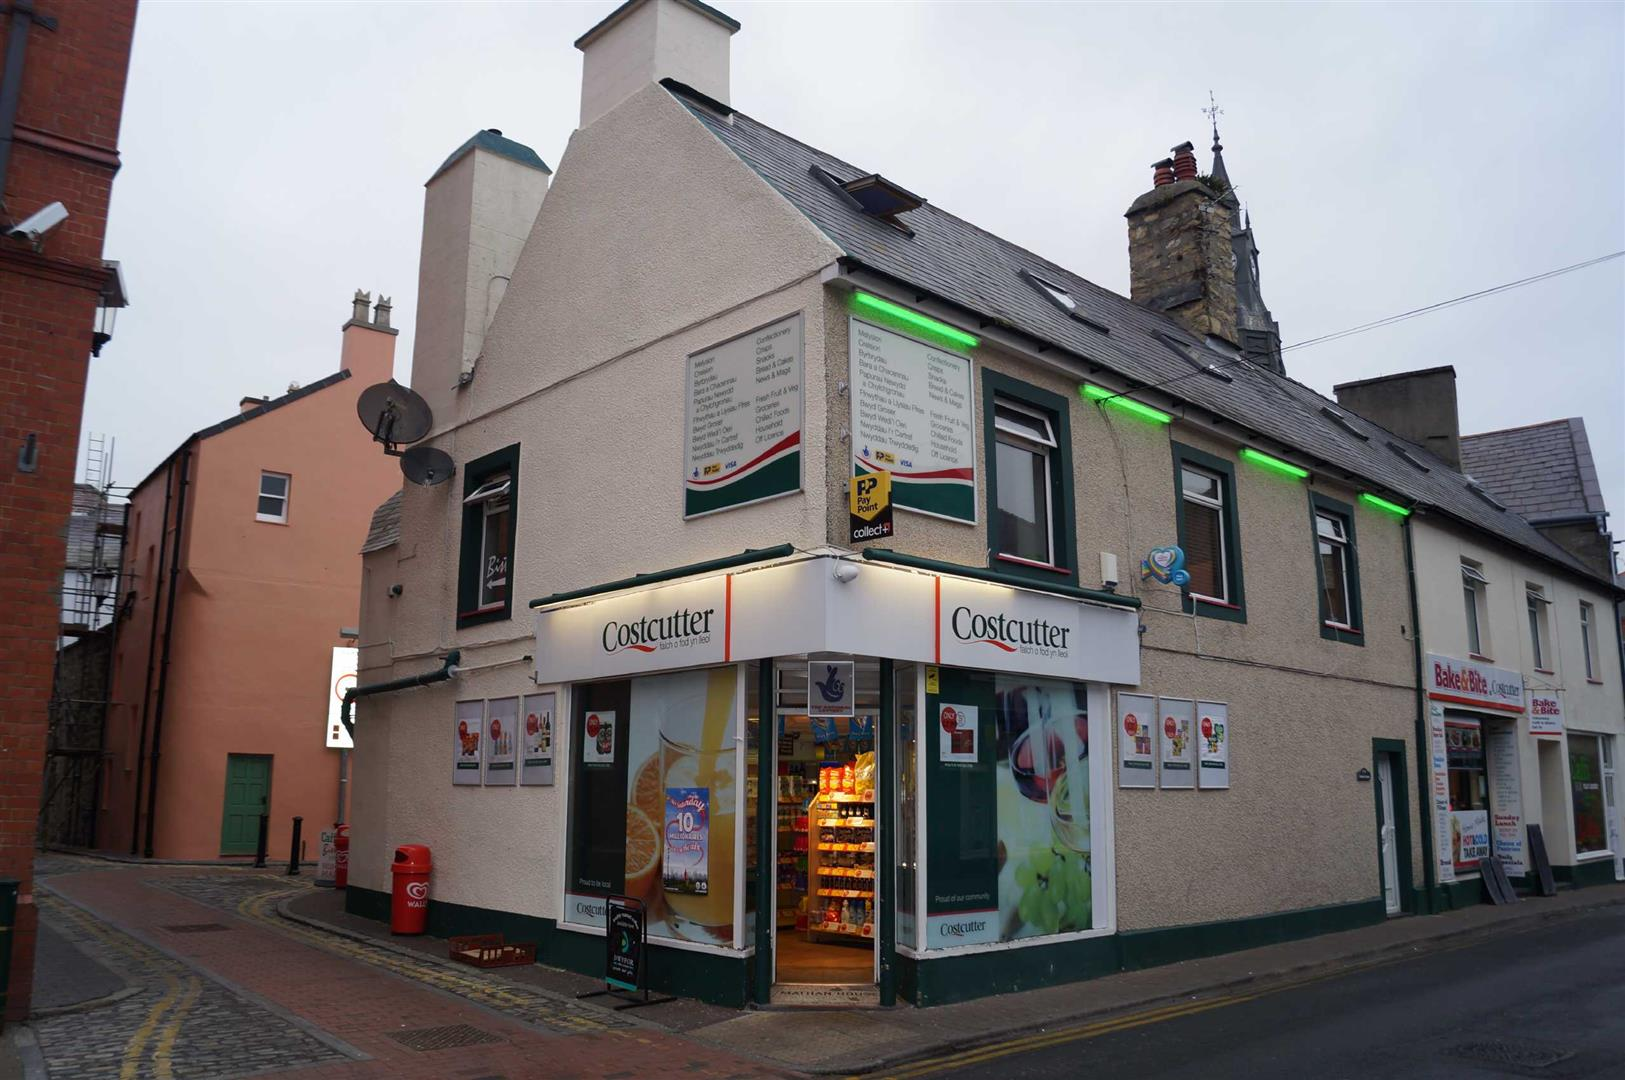 Convenience Store, Cafe & Flat, Penlan Street, Pwllheli - £200,000/Offers over